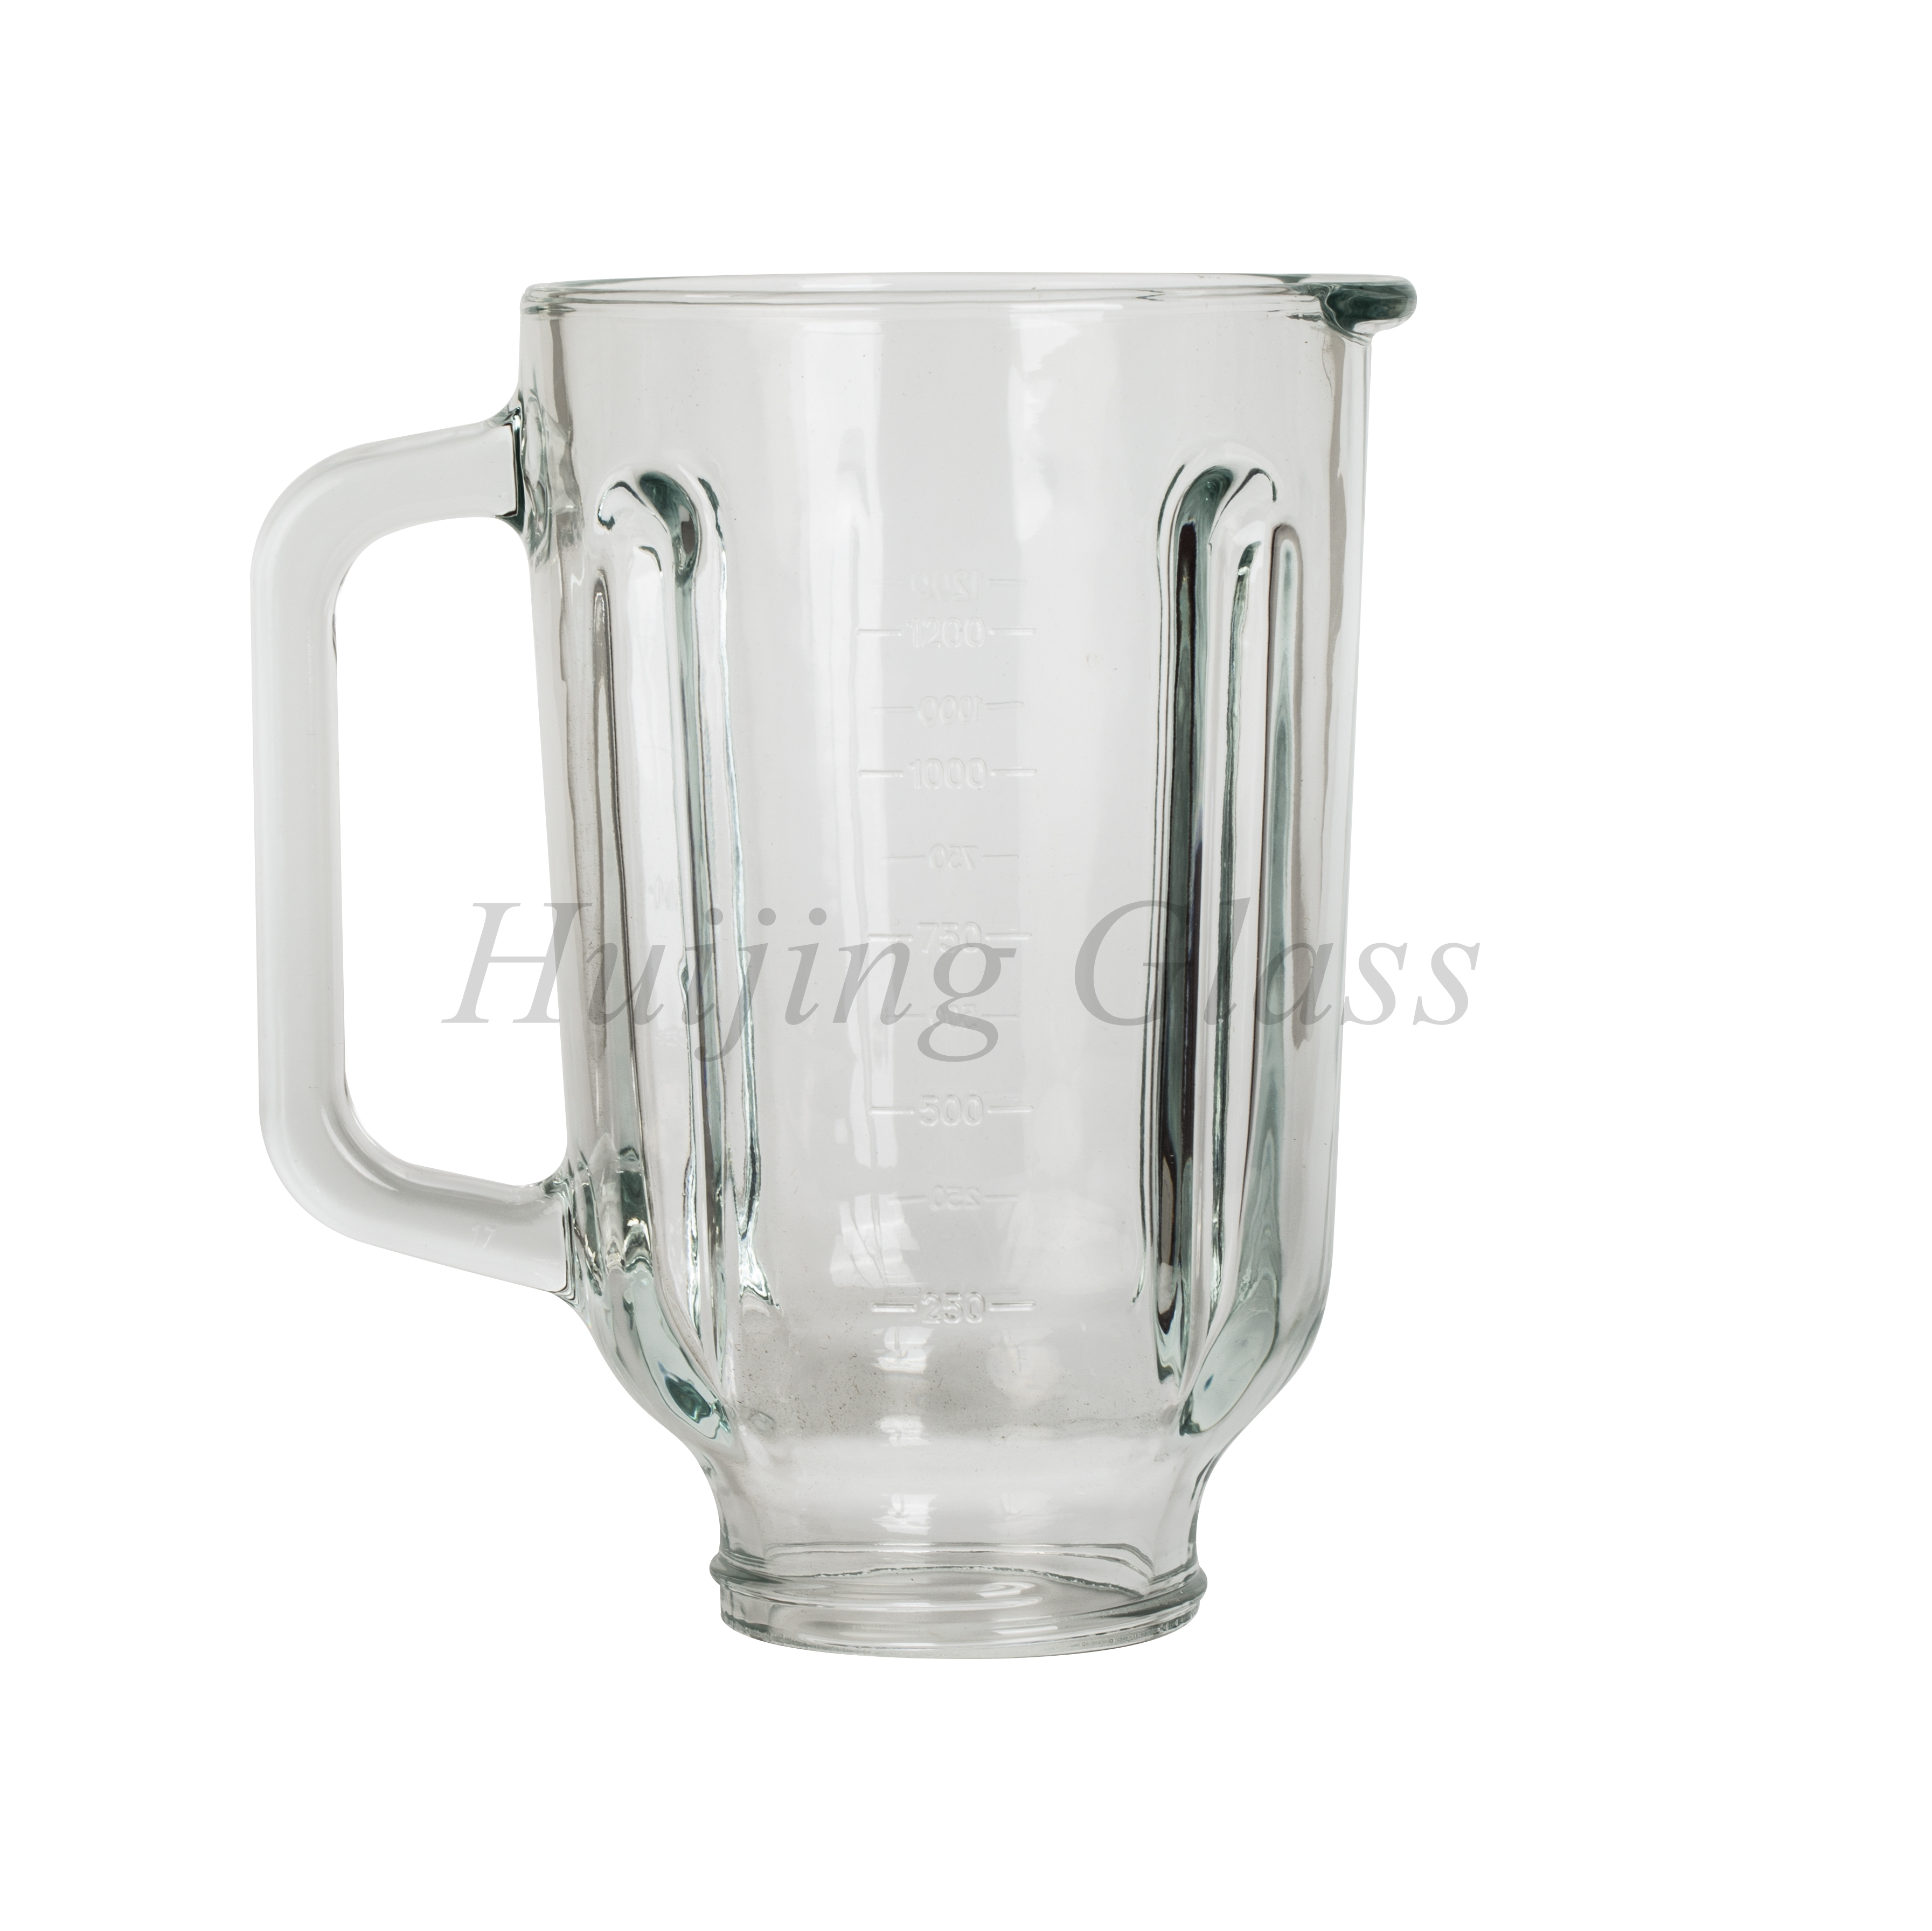 (A04)small household applicance 1.5L best selling blender jar